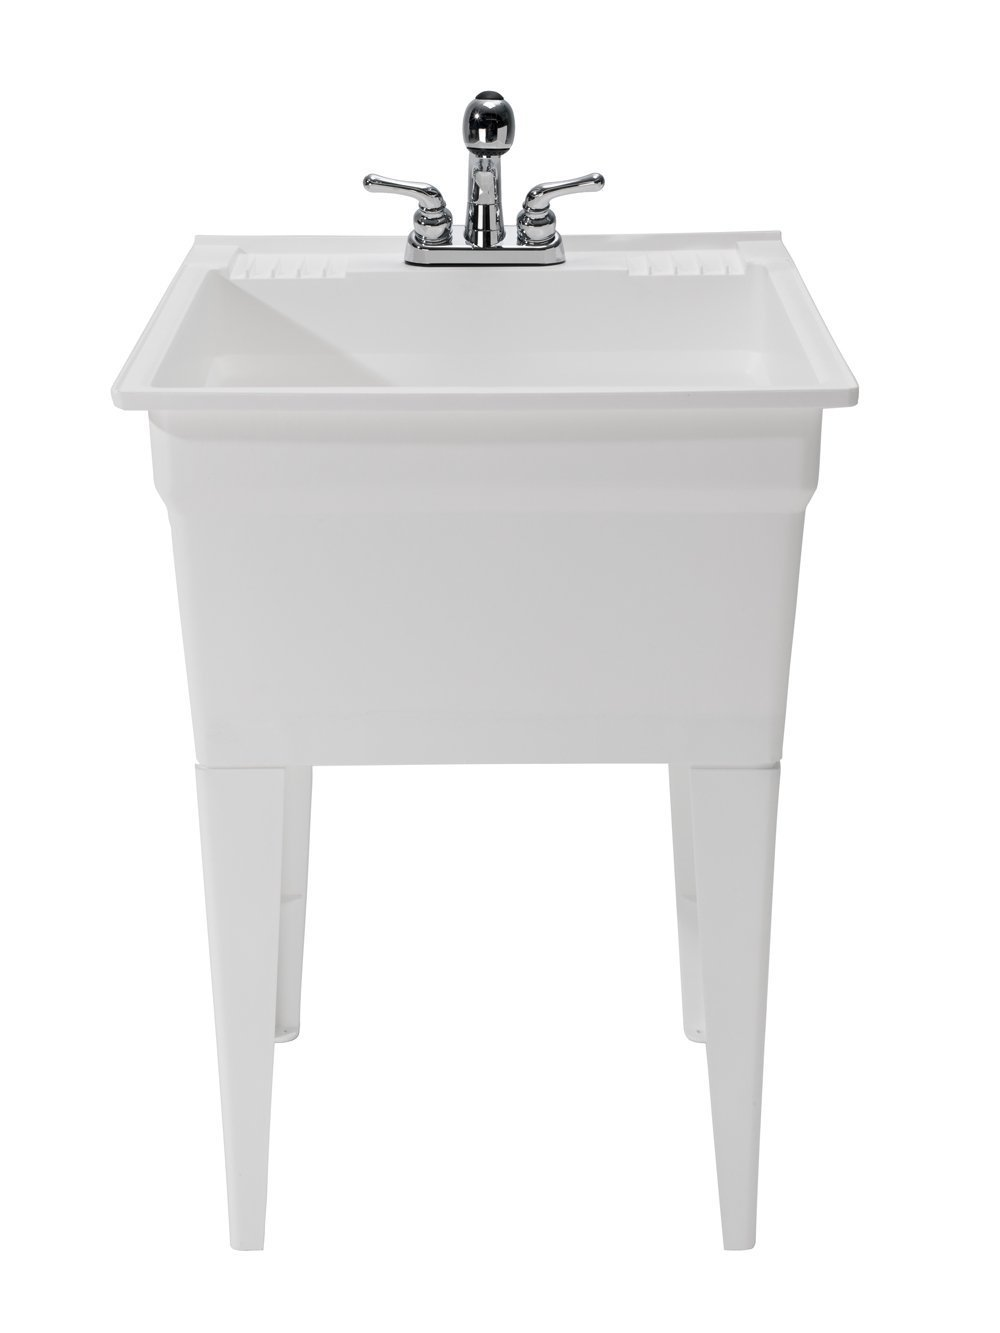 CASHEL Heavy Duty Free-Standing Utility Sink - Fully Loaded Sink Kit, 1960-32-01, White by Cashel